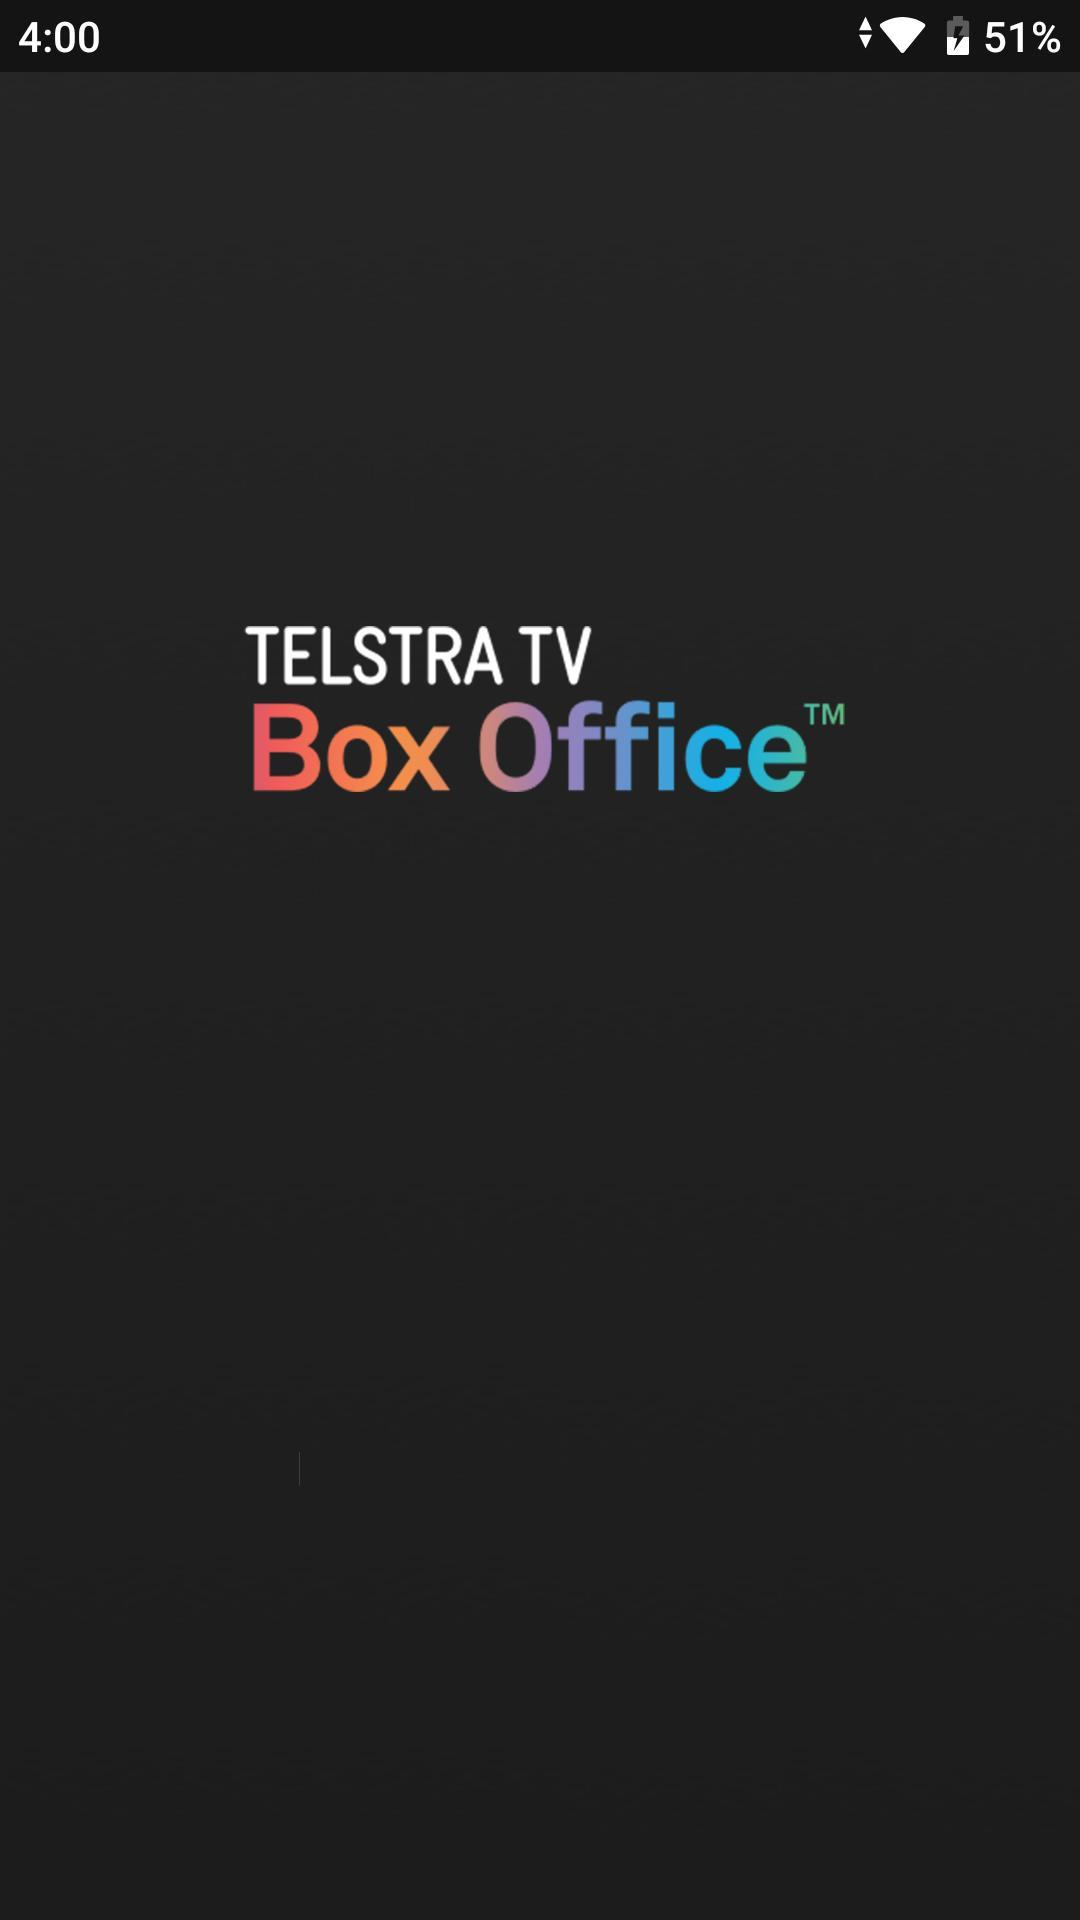 Telstra TV Box Office for Android - APK Download